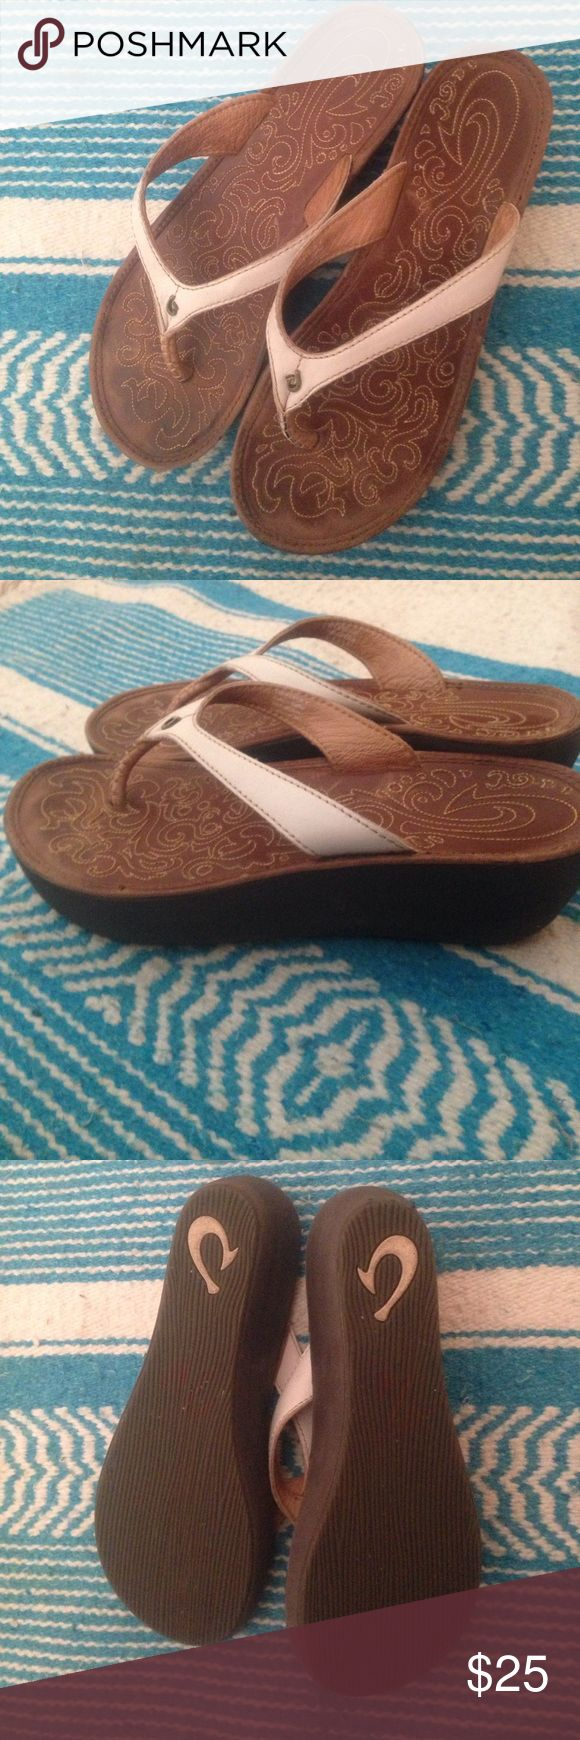 Olukai Wedge Sandal These sandals are is really good condition. There is only one scuff on the back of the wedge (see photo). They have minimal wear on the bottom! They have gorgeous white leather straps with the iconic Olukai detailing on the footbed. OluKai Shoes Sandals